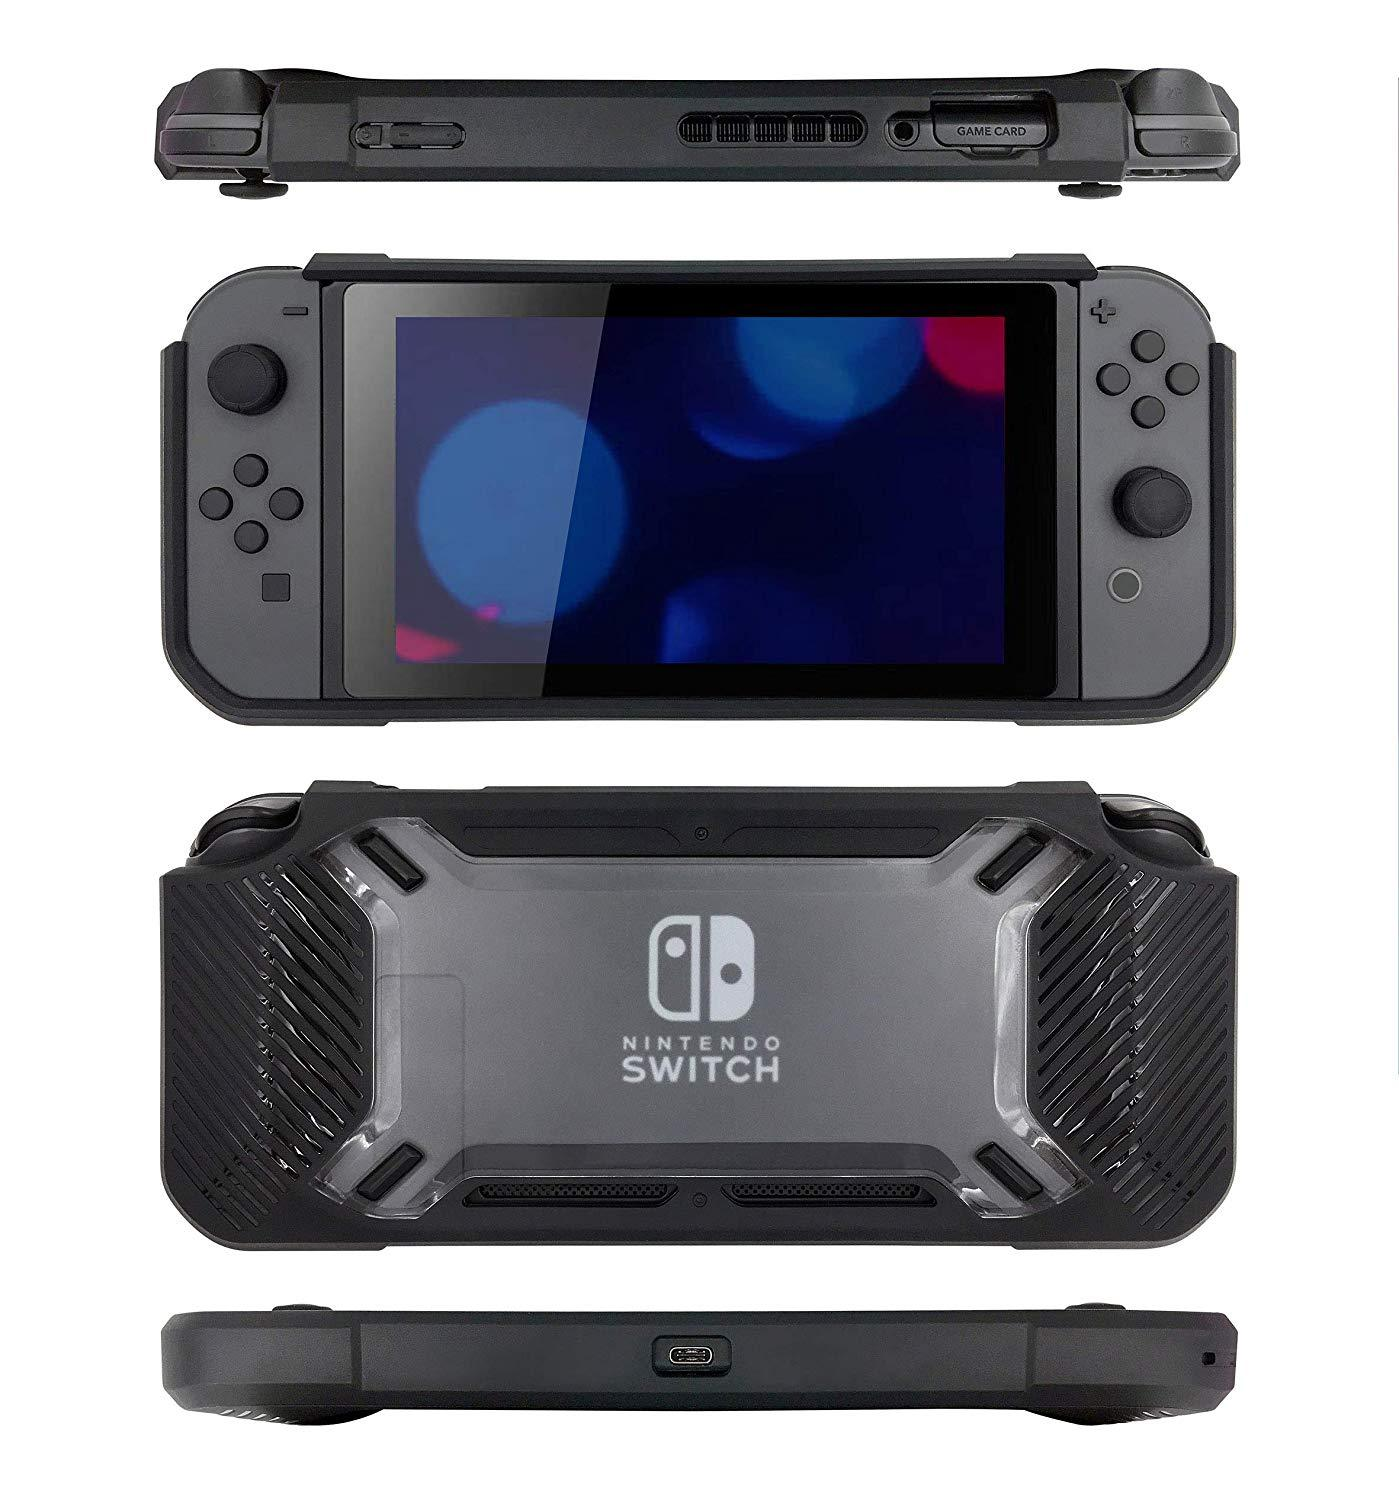 Nintendo Switch hard case protection